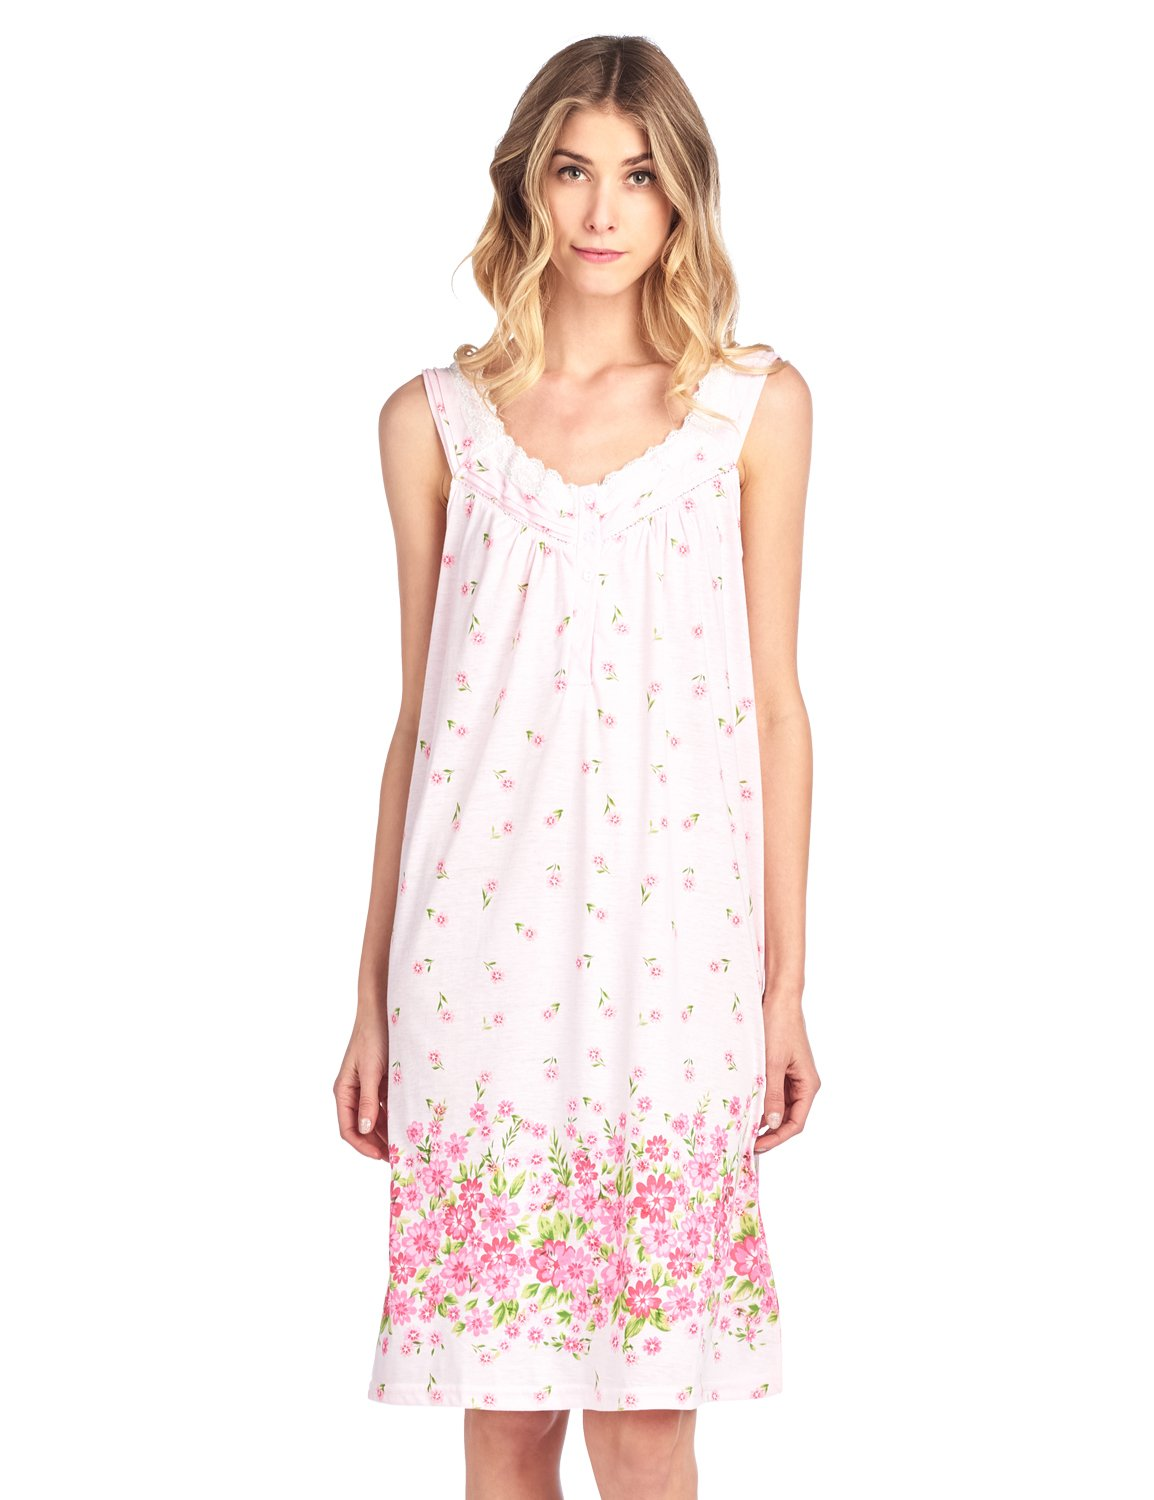 Casual Nights Women's Sleeveless Embroidered Pointelle Nightgown Sleep Dress